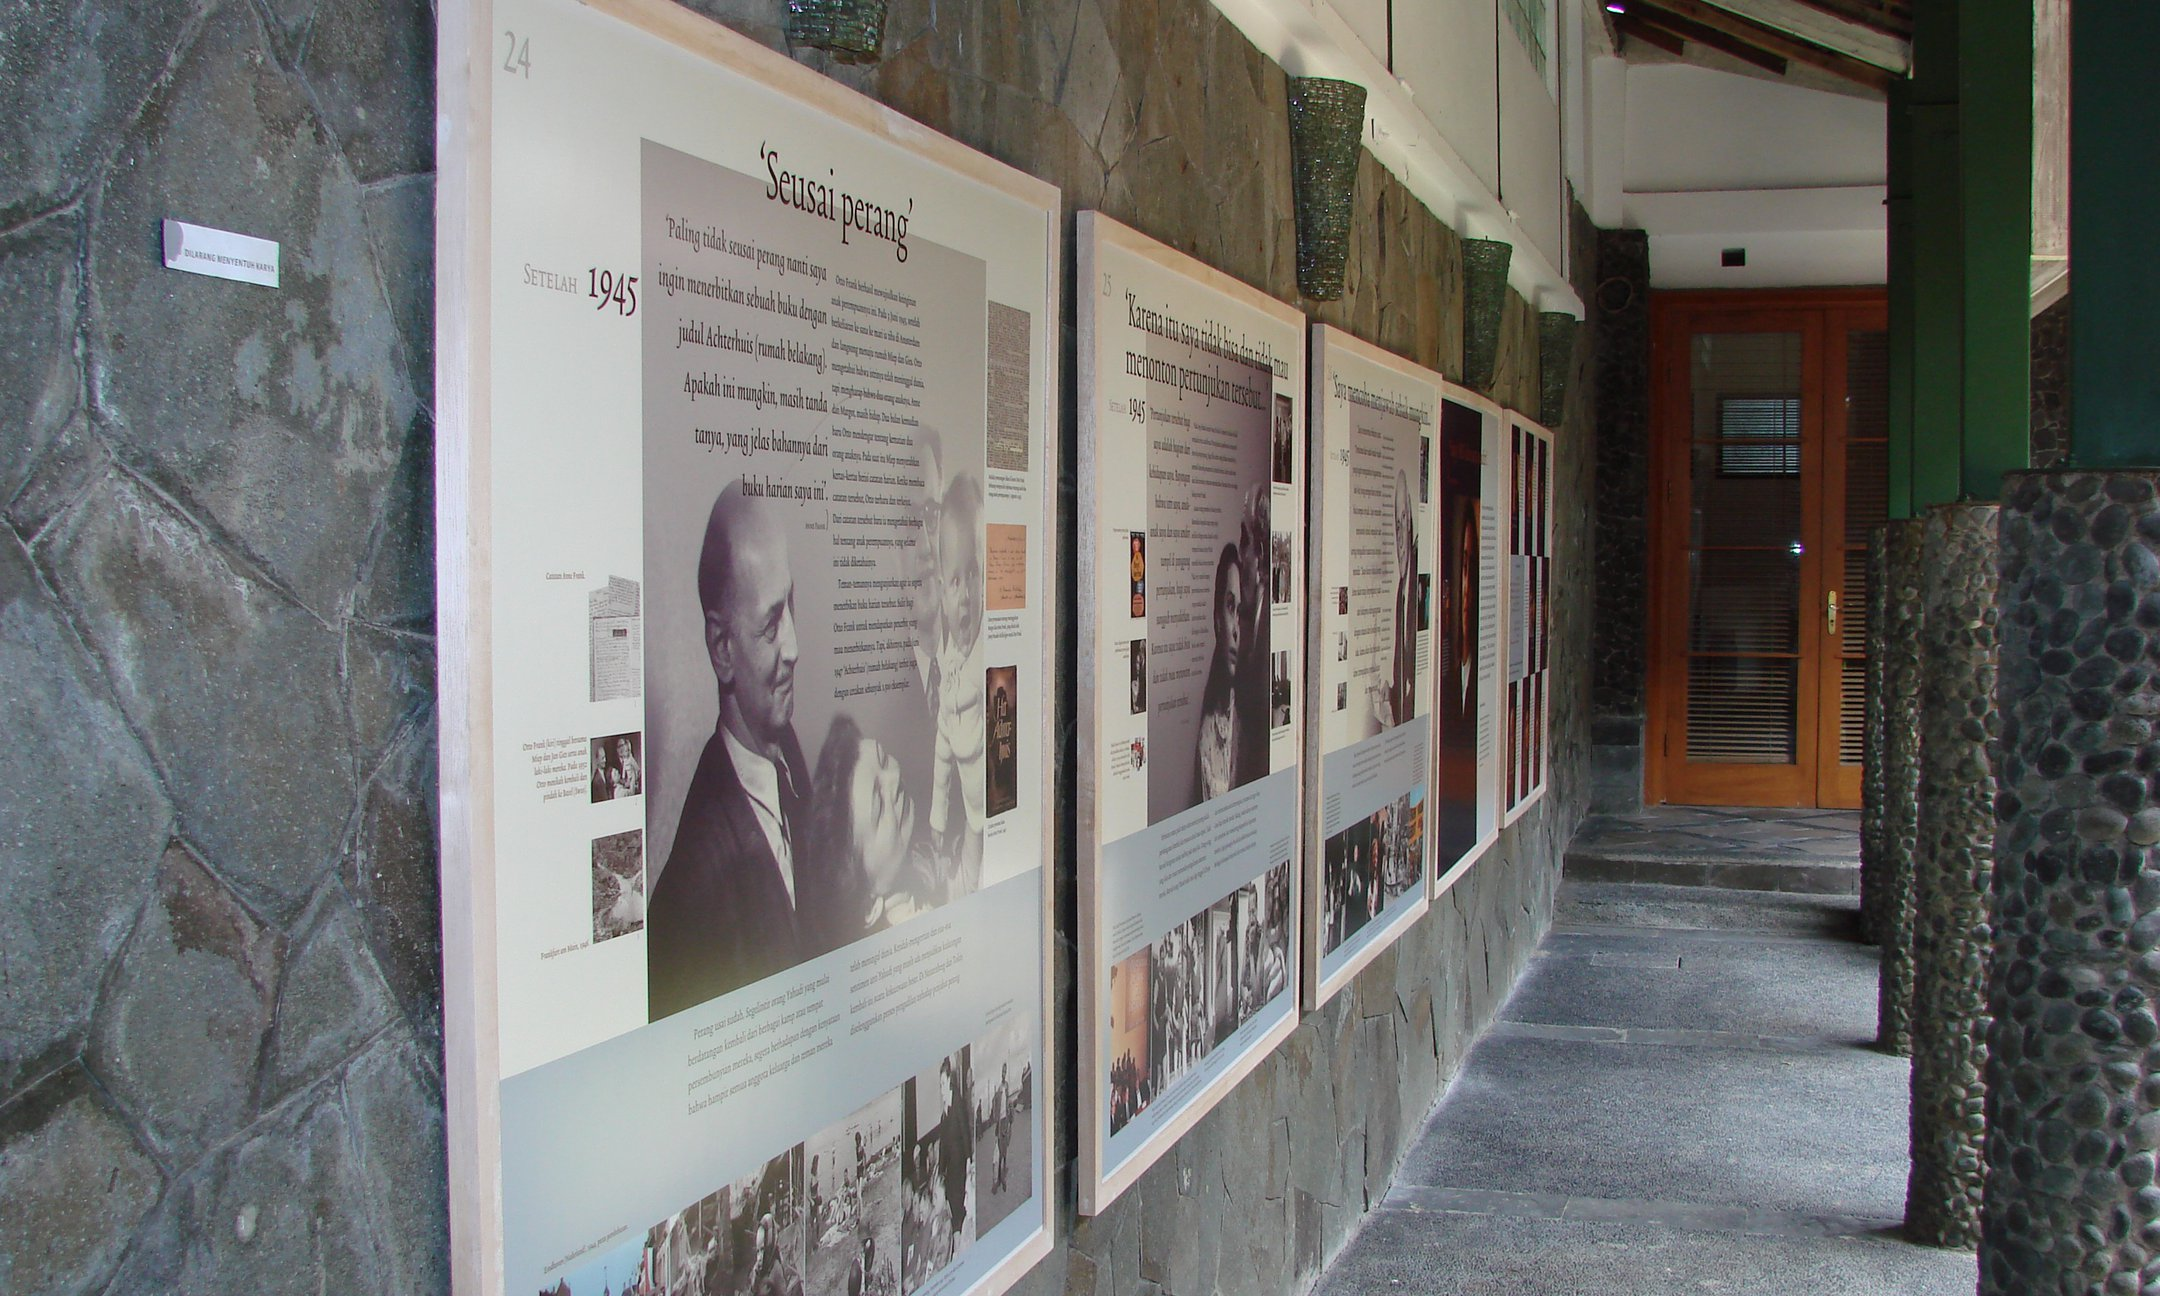 Exhibition 'Anne Frank a History for today' in Bandung, Indonesia